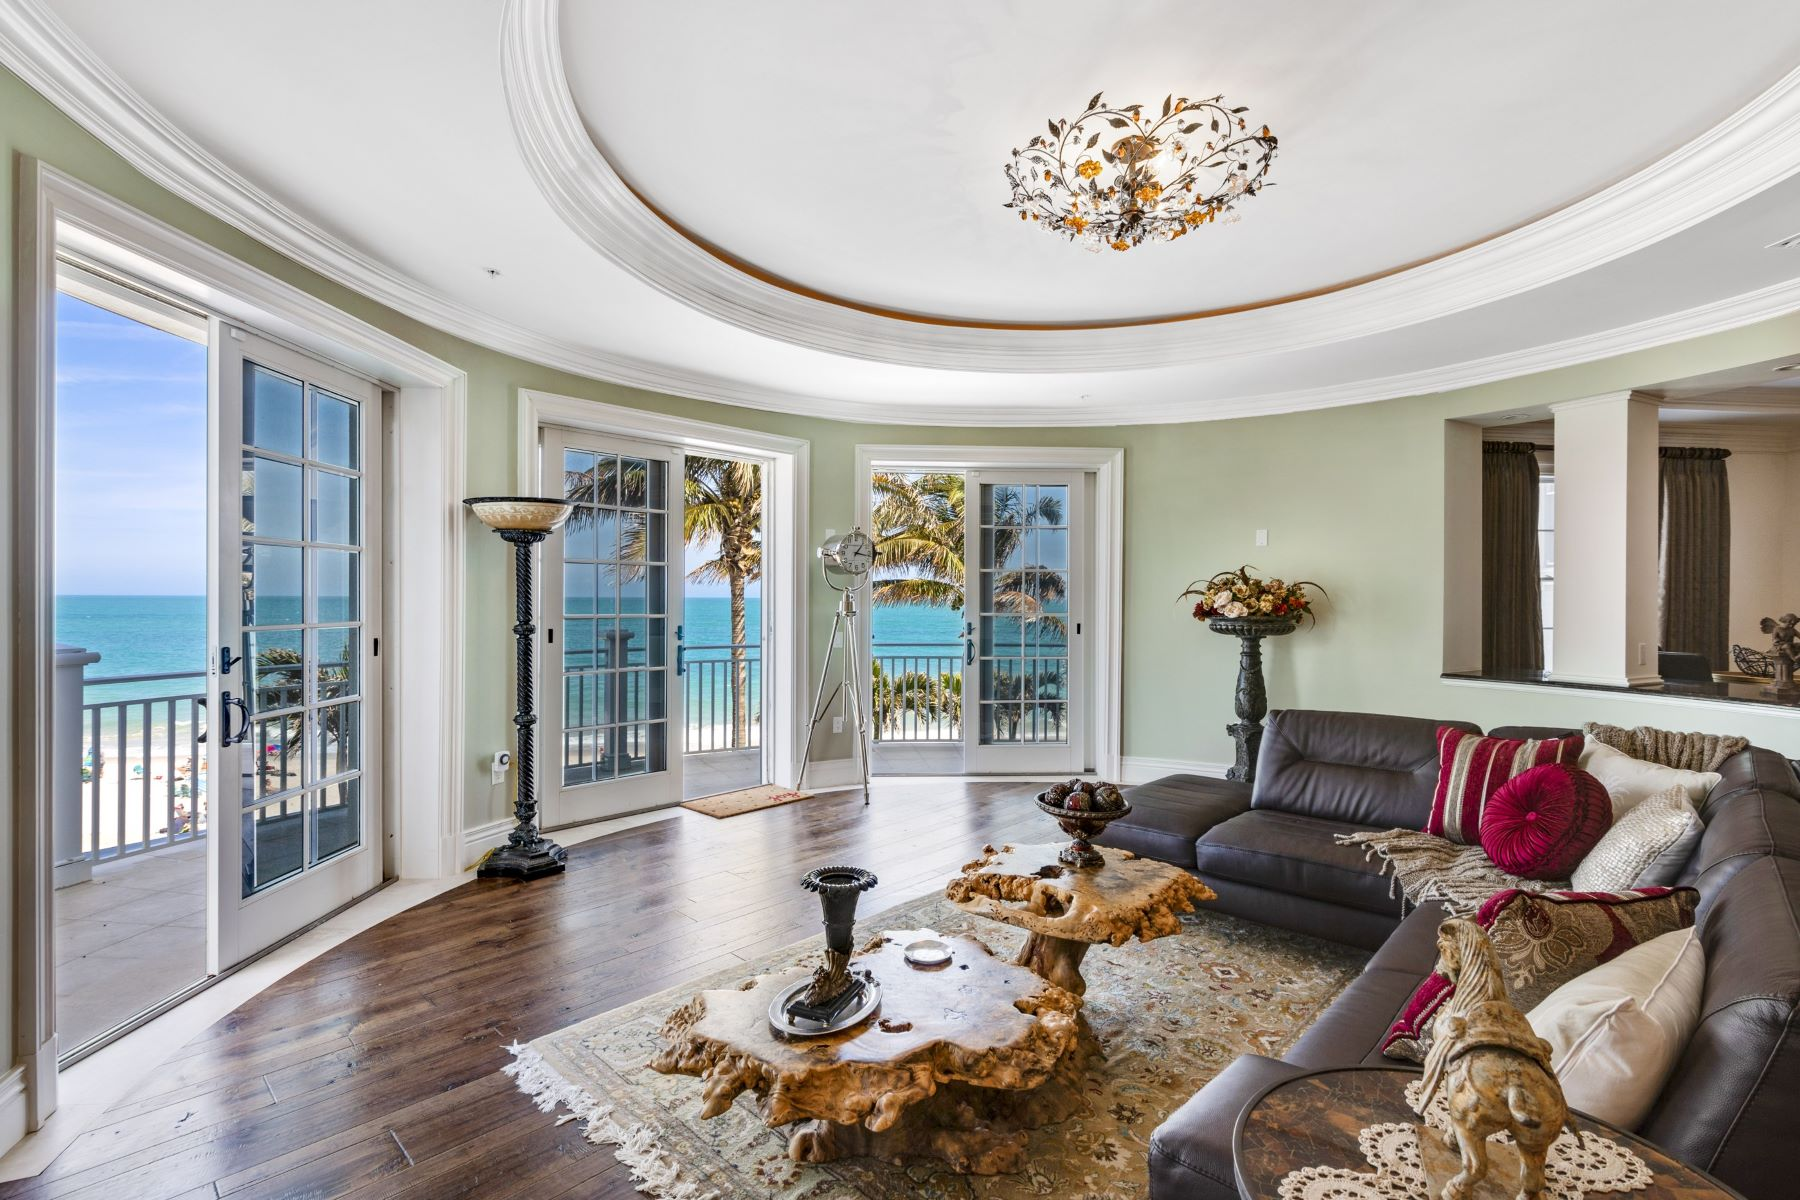 for Sale at 1010 Easter Lily Lane, 204 Vero Beach, Florida 32963 United States